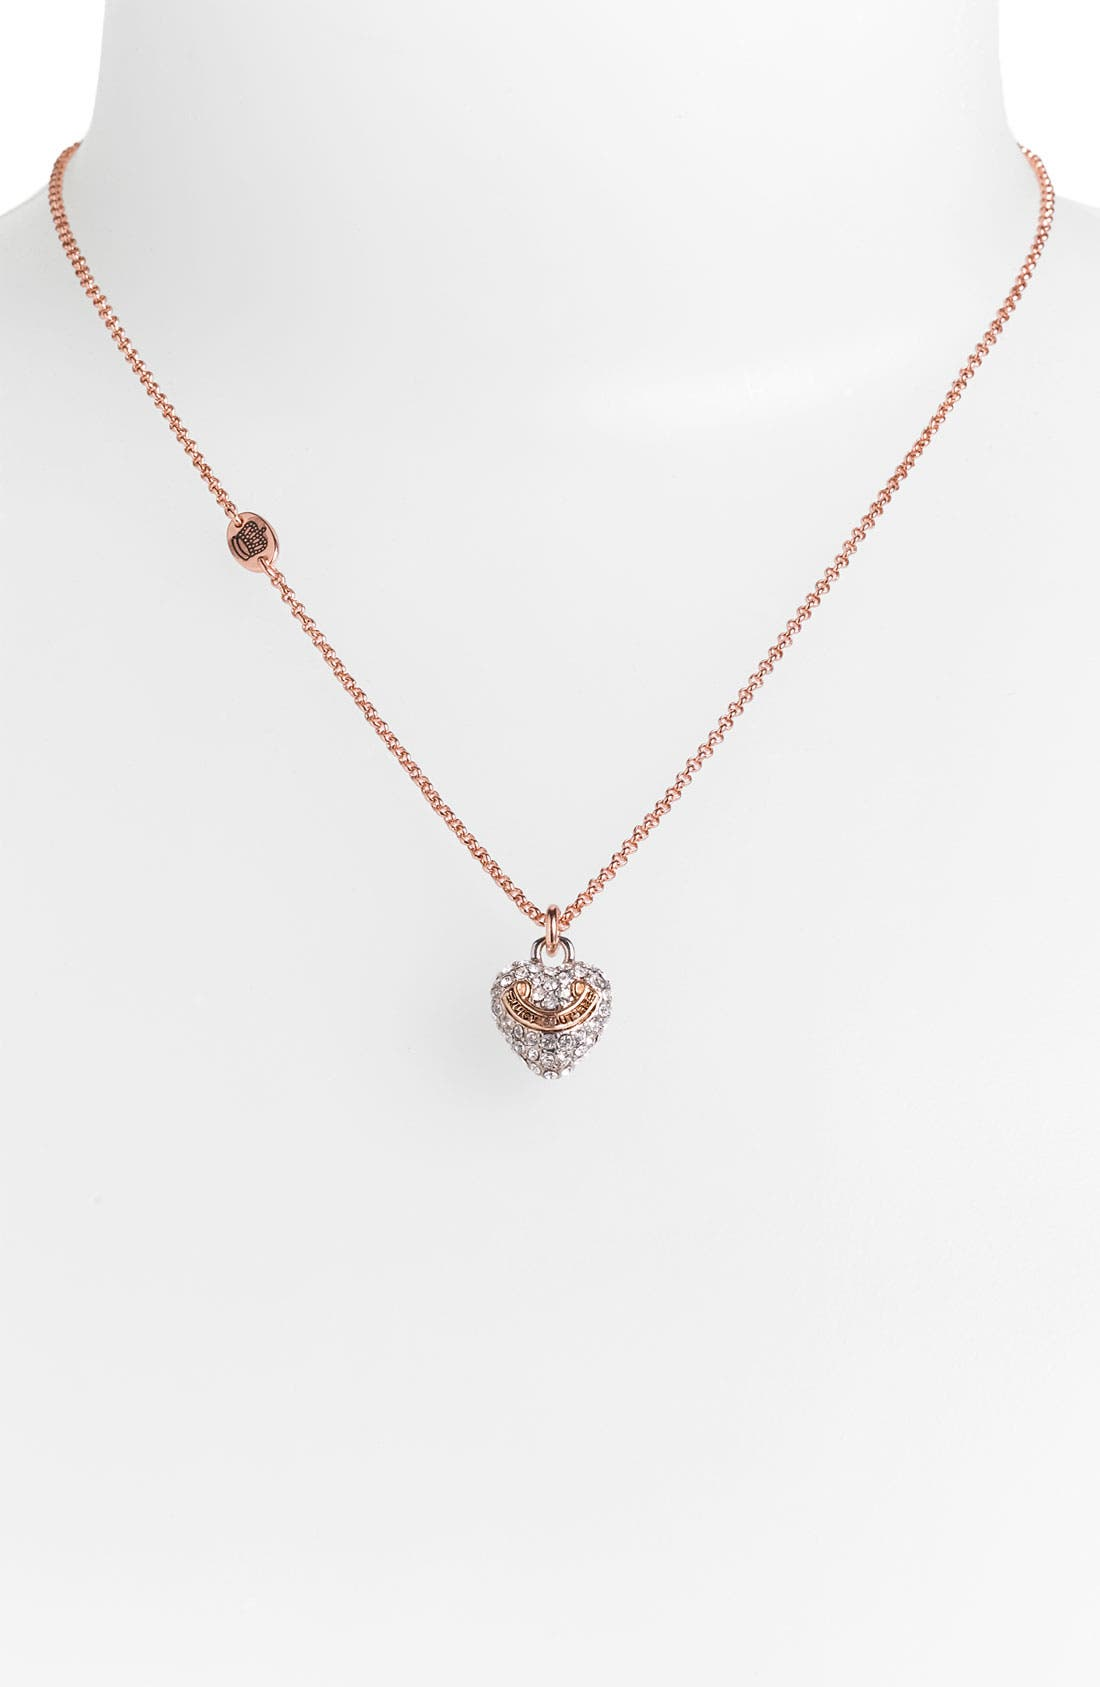 Alternate Image 1 Selected - Juicy Couture 'Wish - Pavé Heart' Necklace